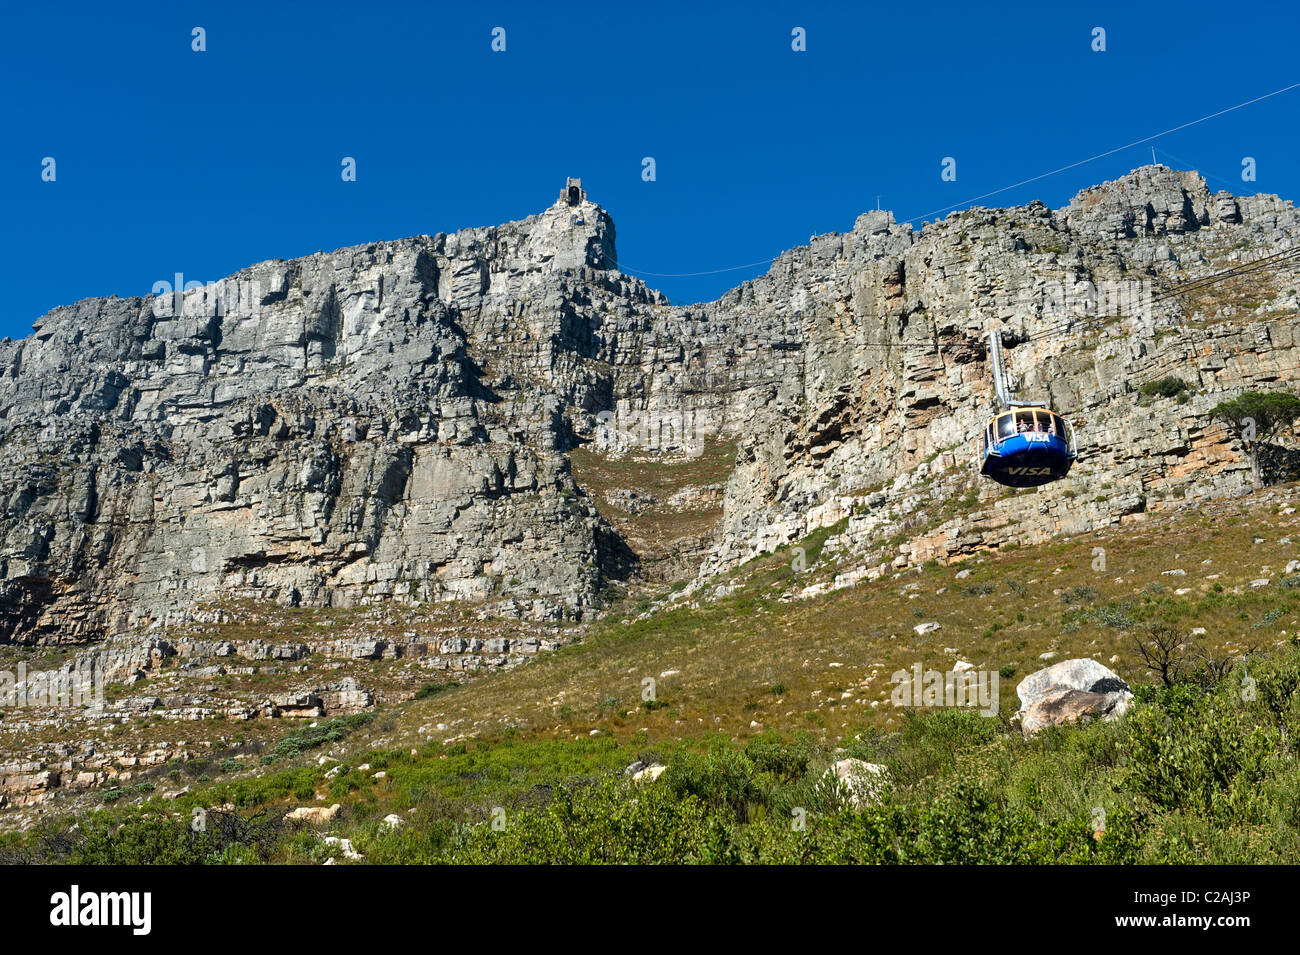 Table Mountain Upper Cable Station and cable car view from Tafelberg, Cape Town, South Africa - Stock Image